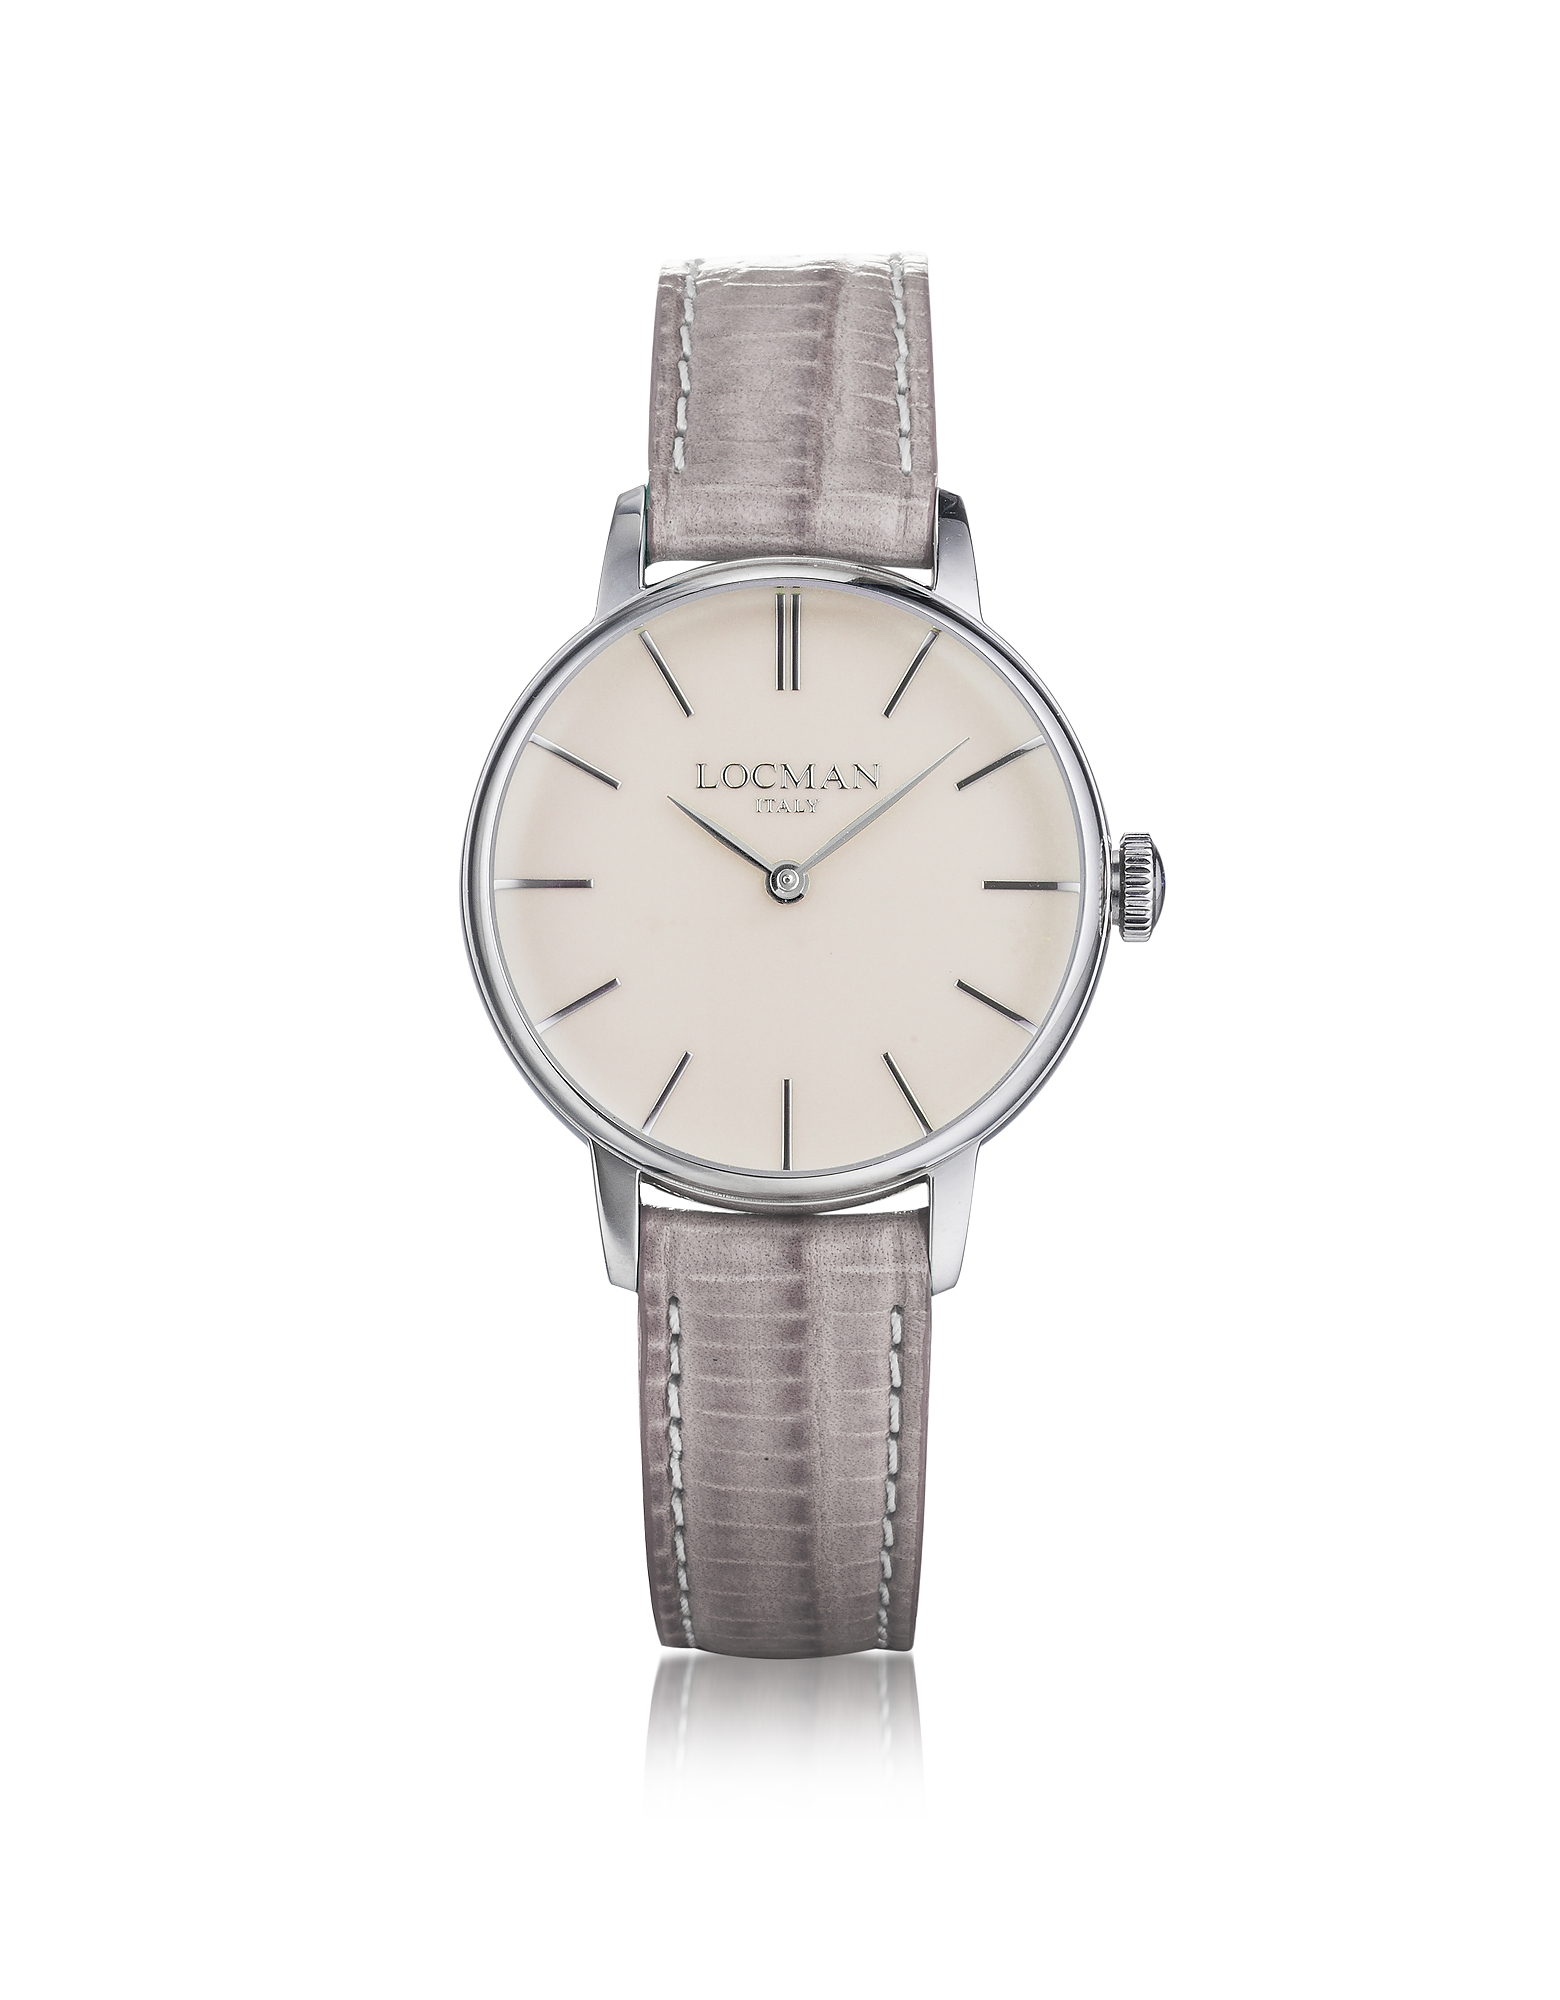 Locman Designer Women's Watches, 1960 Silver Stainless Steel Women's Watch w/Light Purple Croco Embo